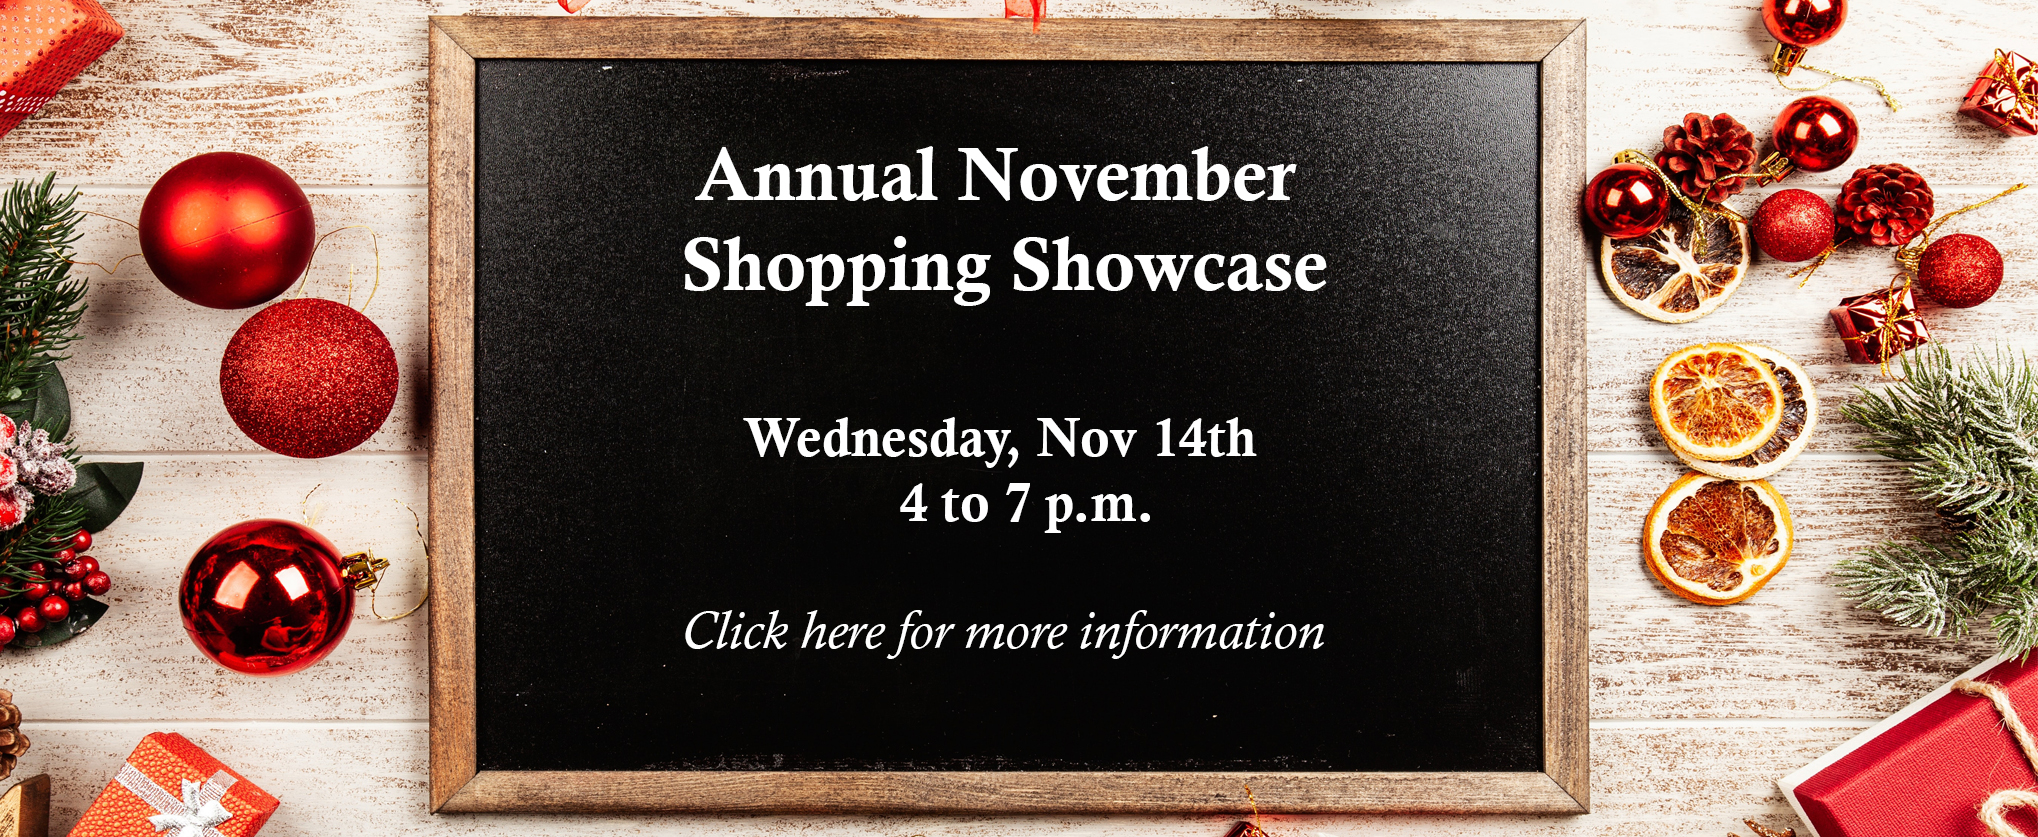 Annual November Shopping Showcase, November 14th from 4 to 7 p.,.